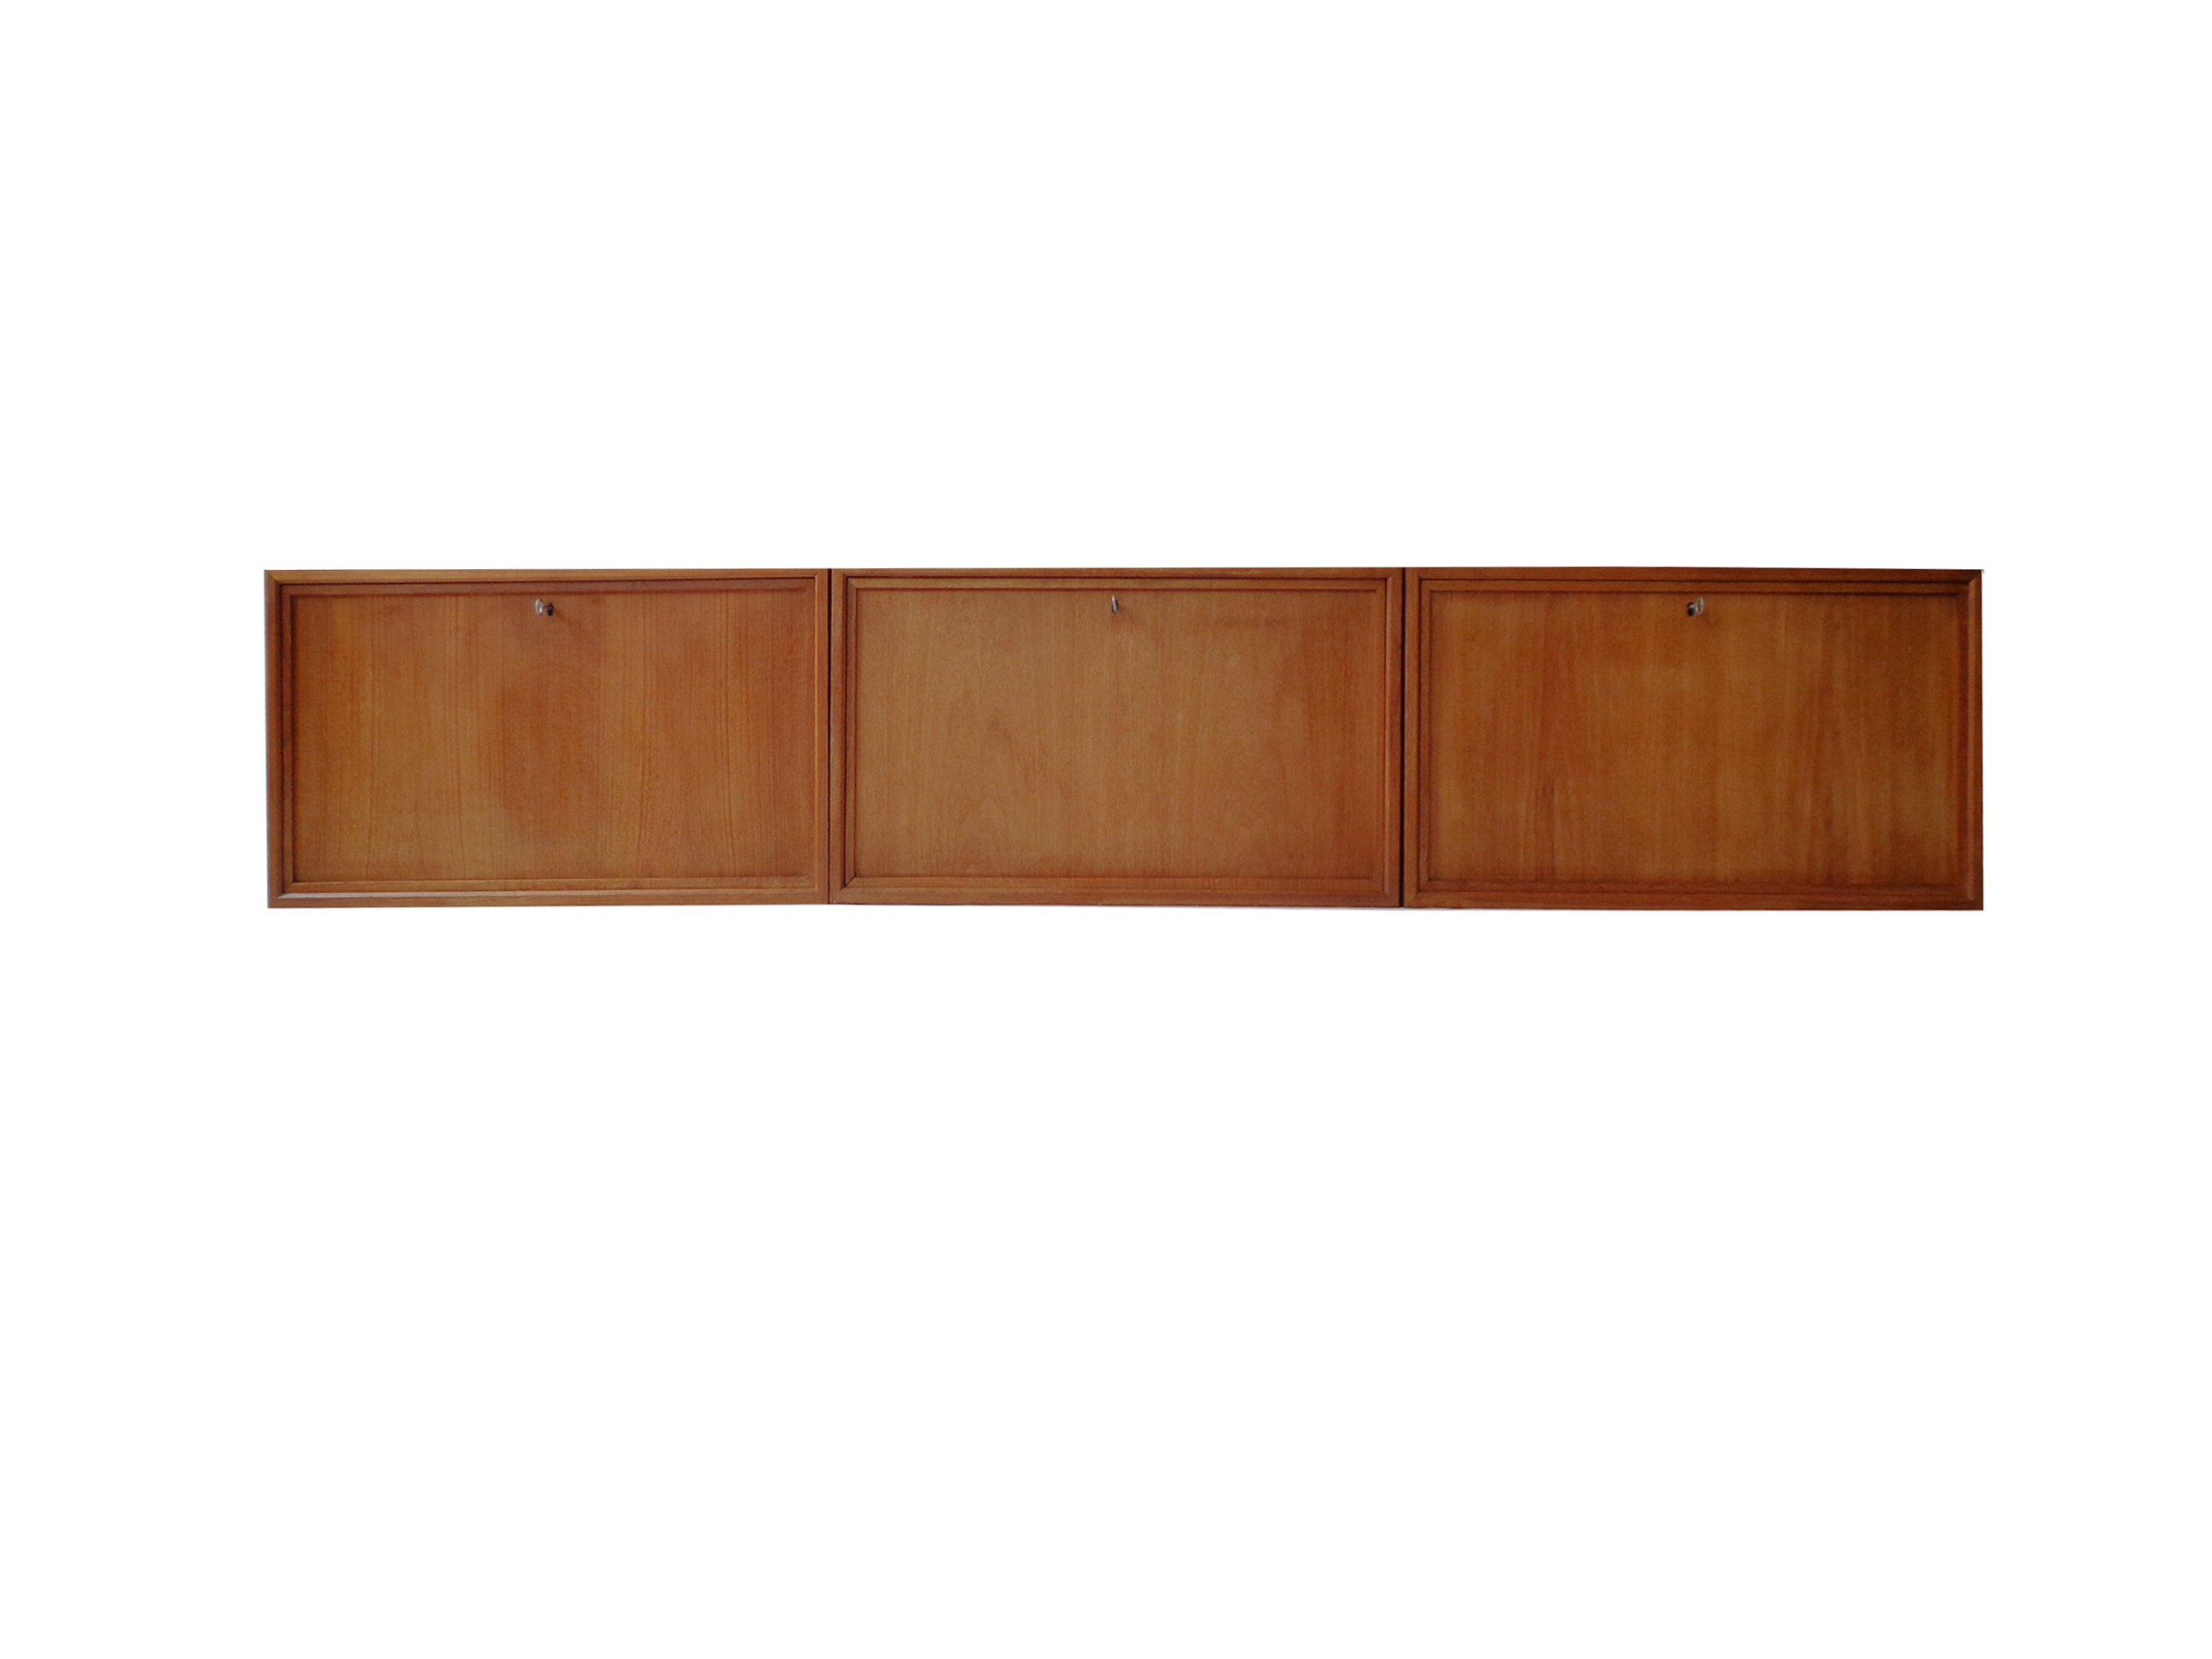 Poul Cadovius wall-mounted cabinet